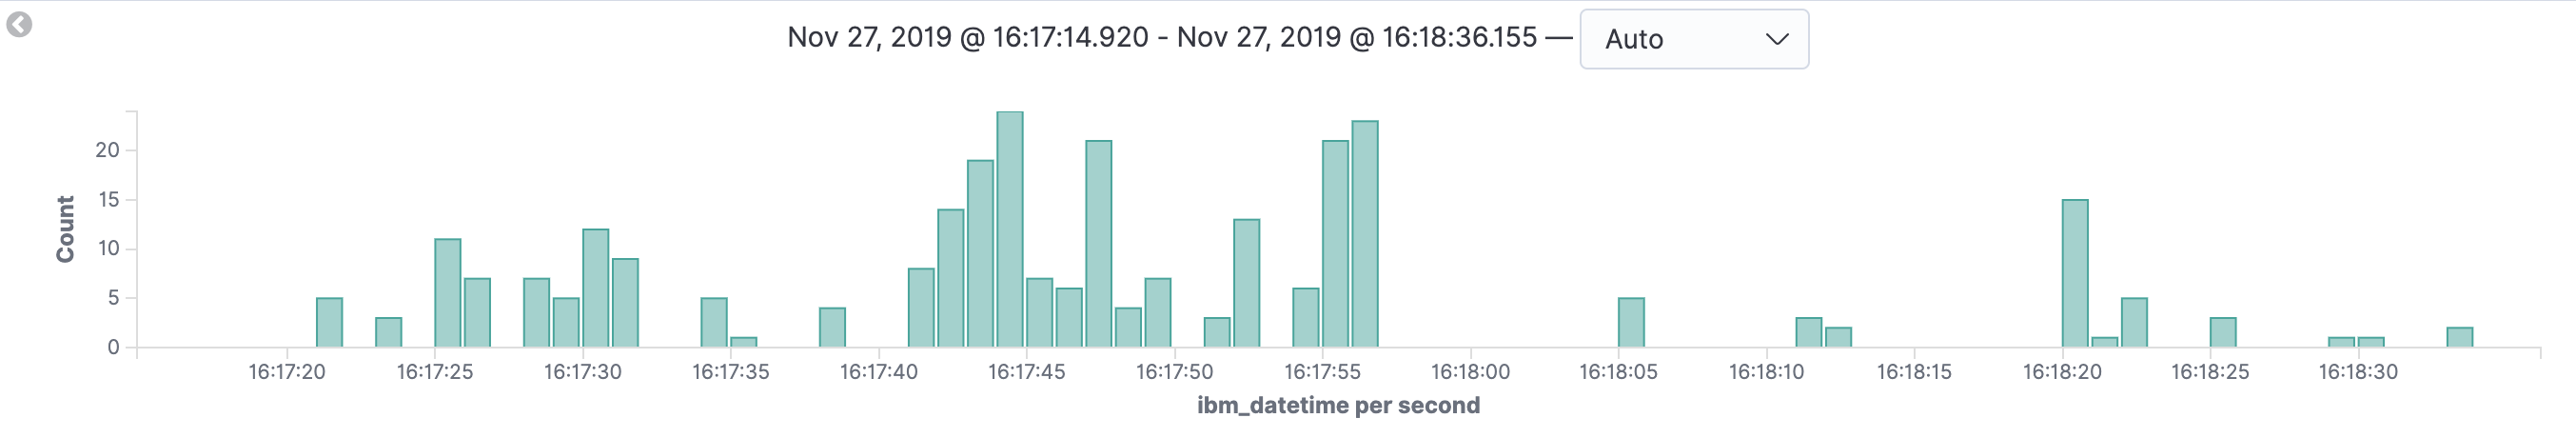 Kibana Discover Tab of Events Over Time